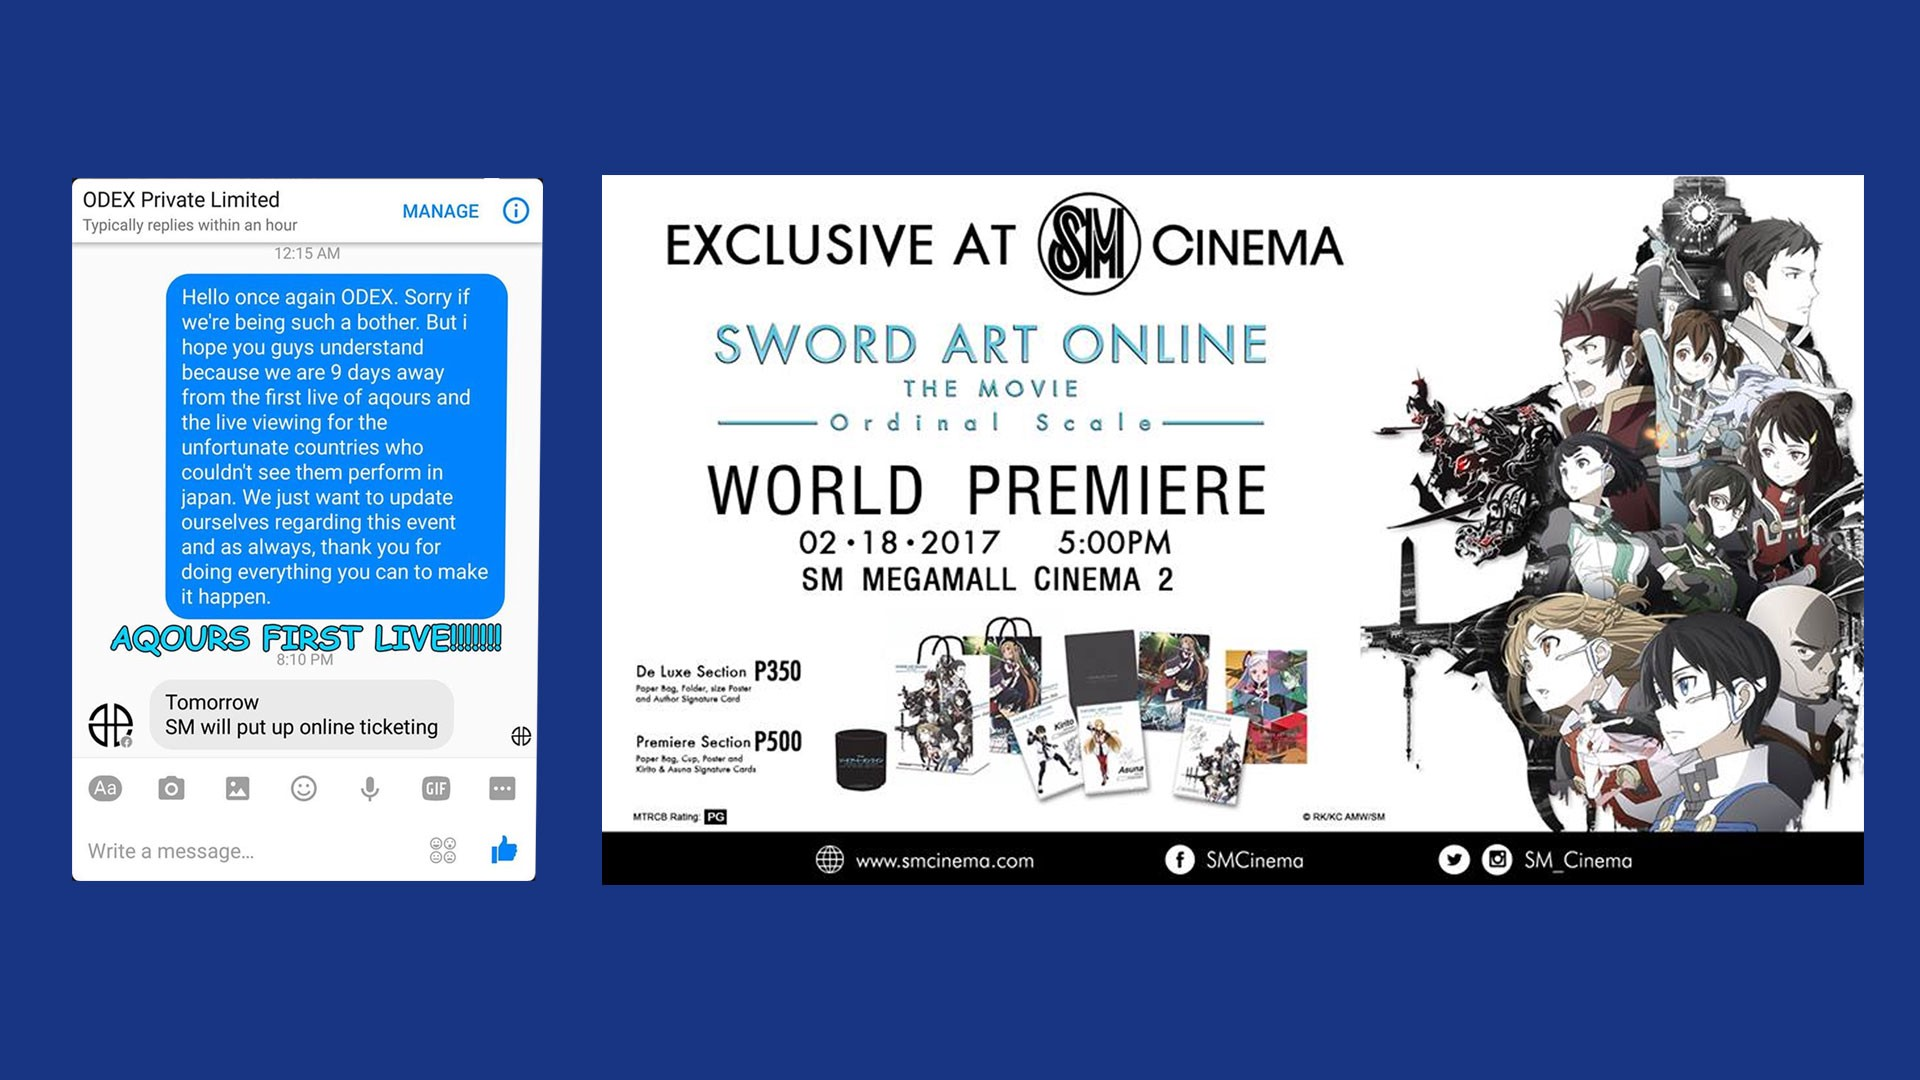 Prepare your wallets, SAO and Aqours fans—ODEX and SM have great news for you